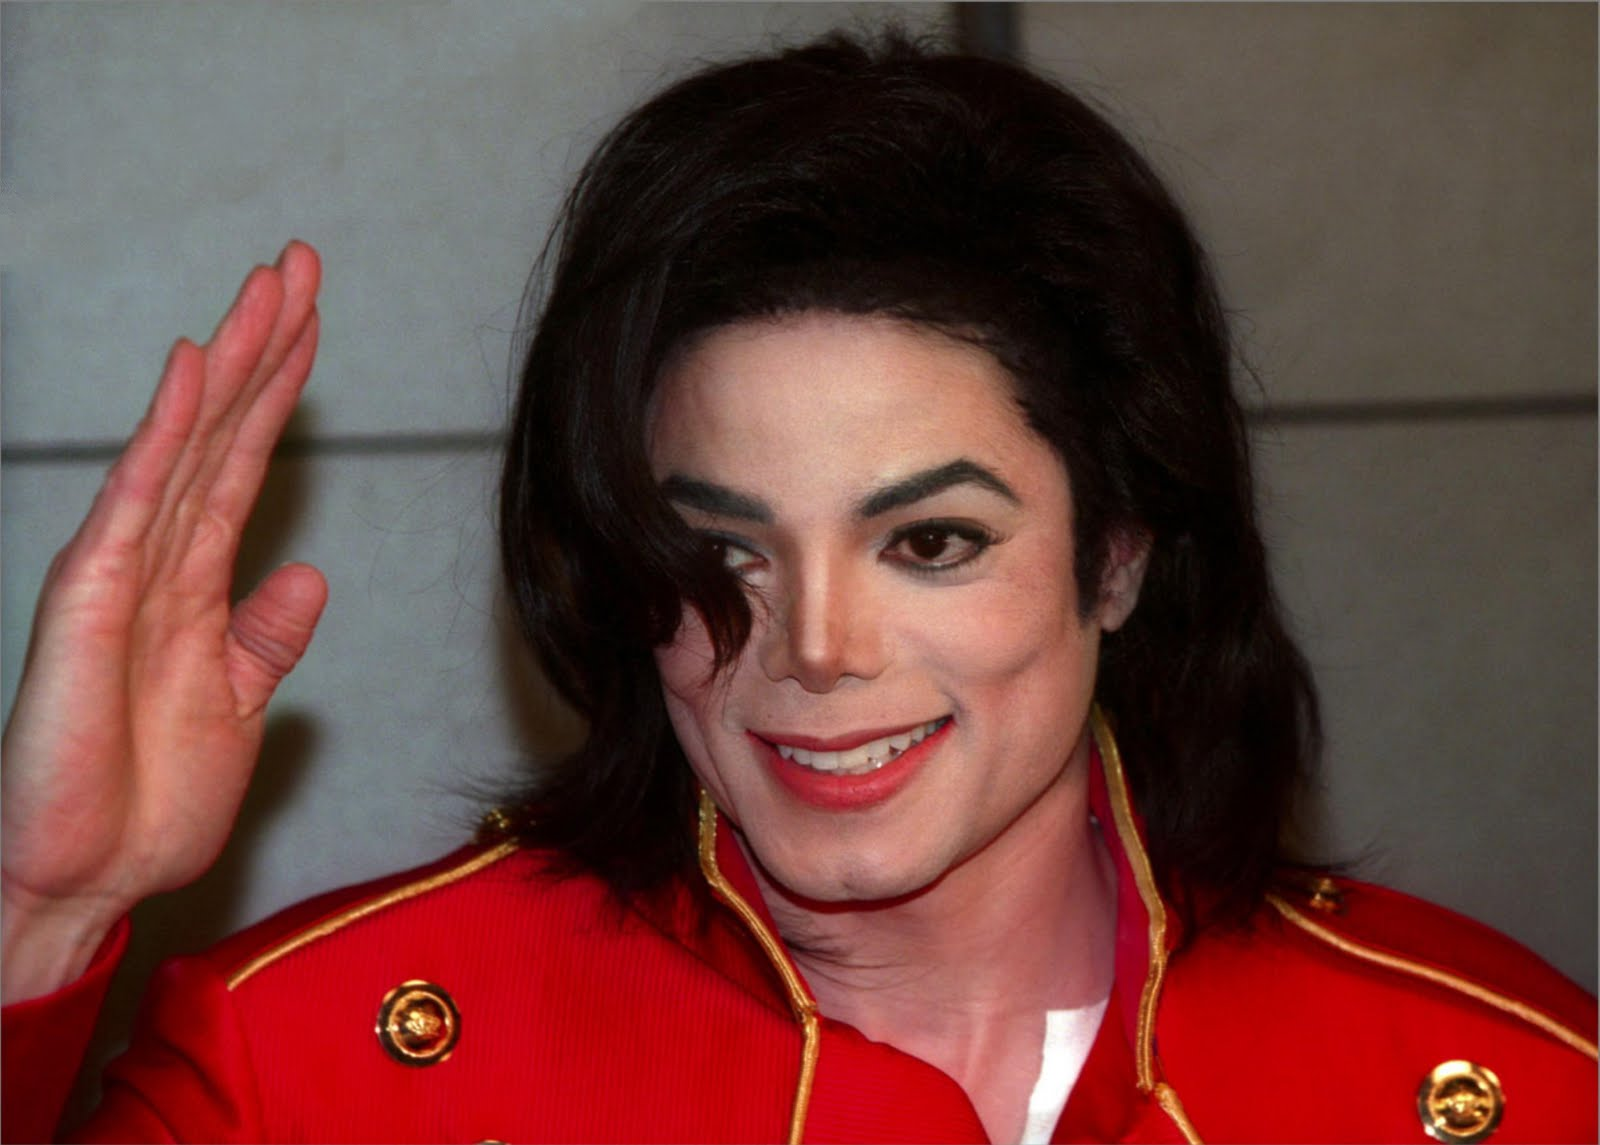 Michael Jackson – an Unprecedented Career and Destiny